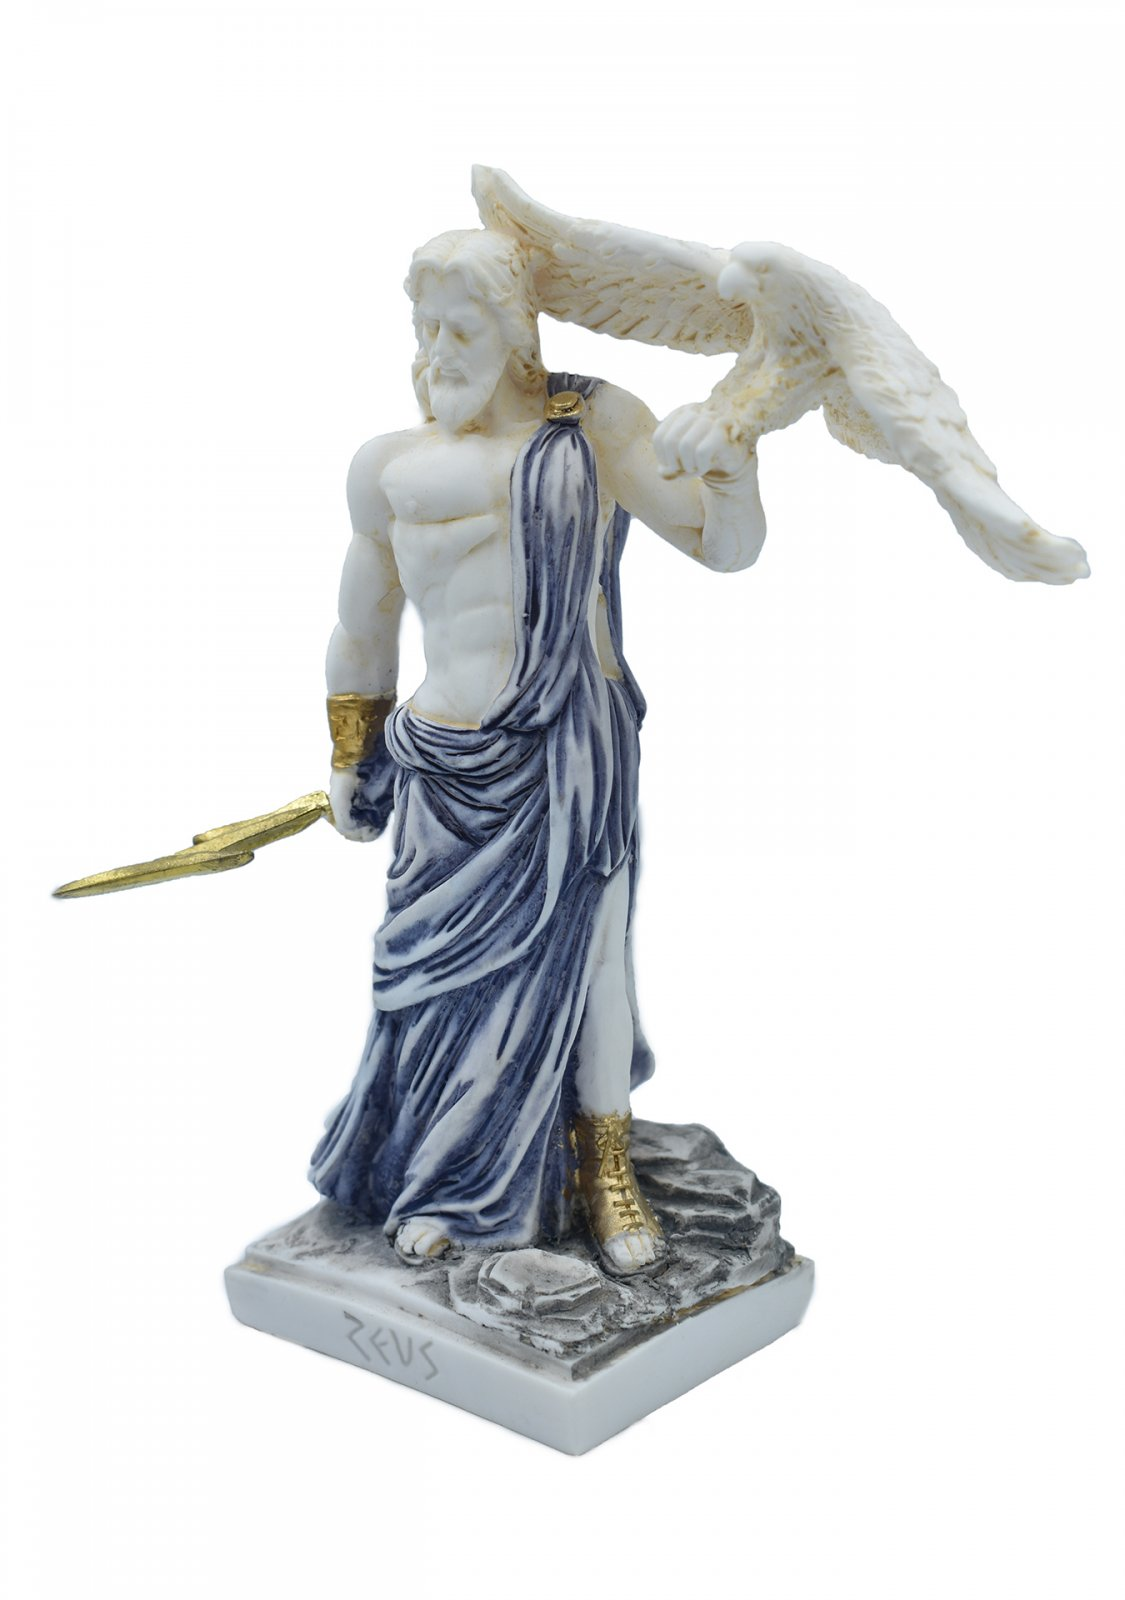 Zeus, the Father of Gods, greek alabaster statue with blue color and patina